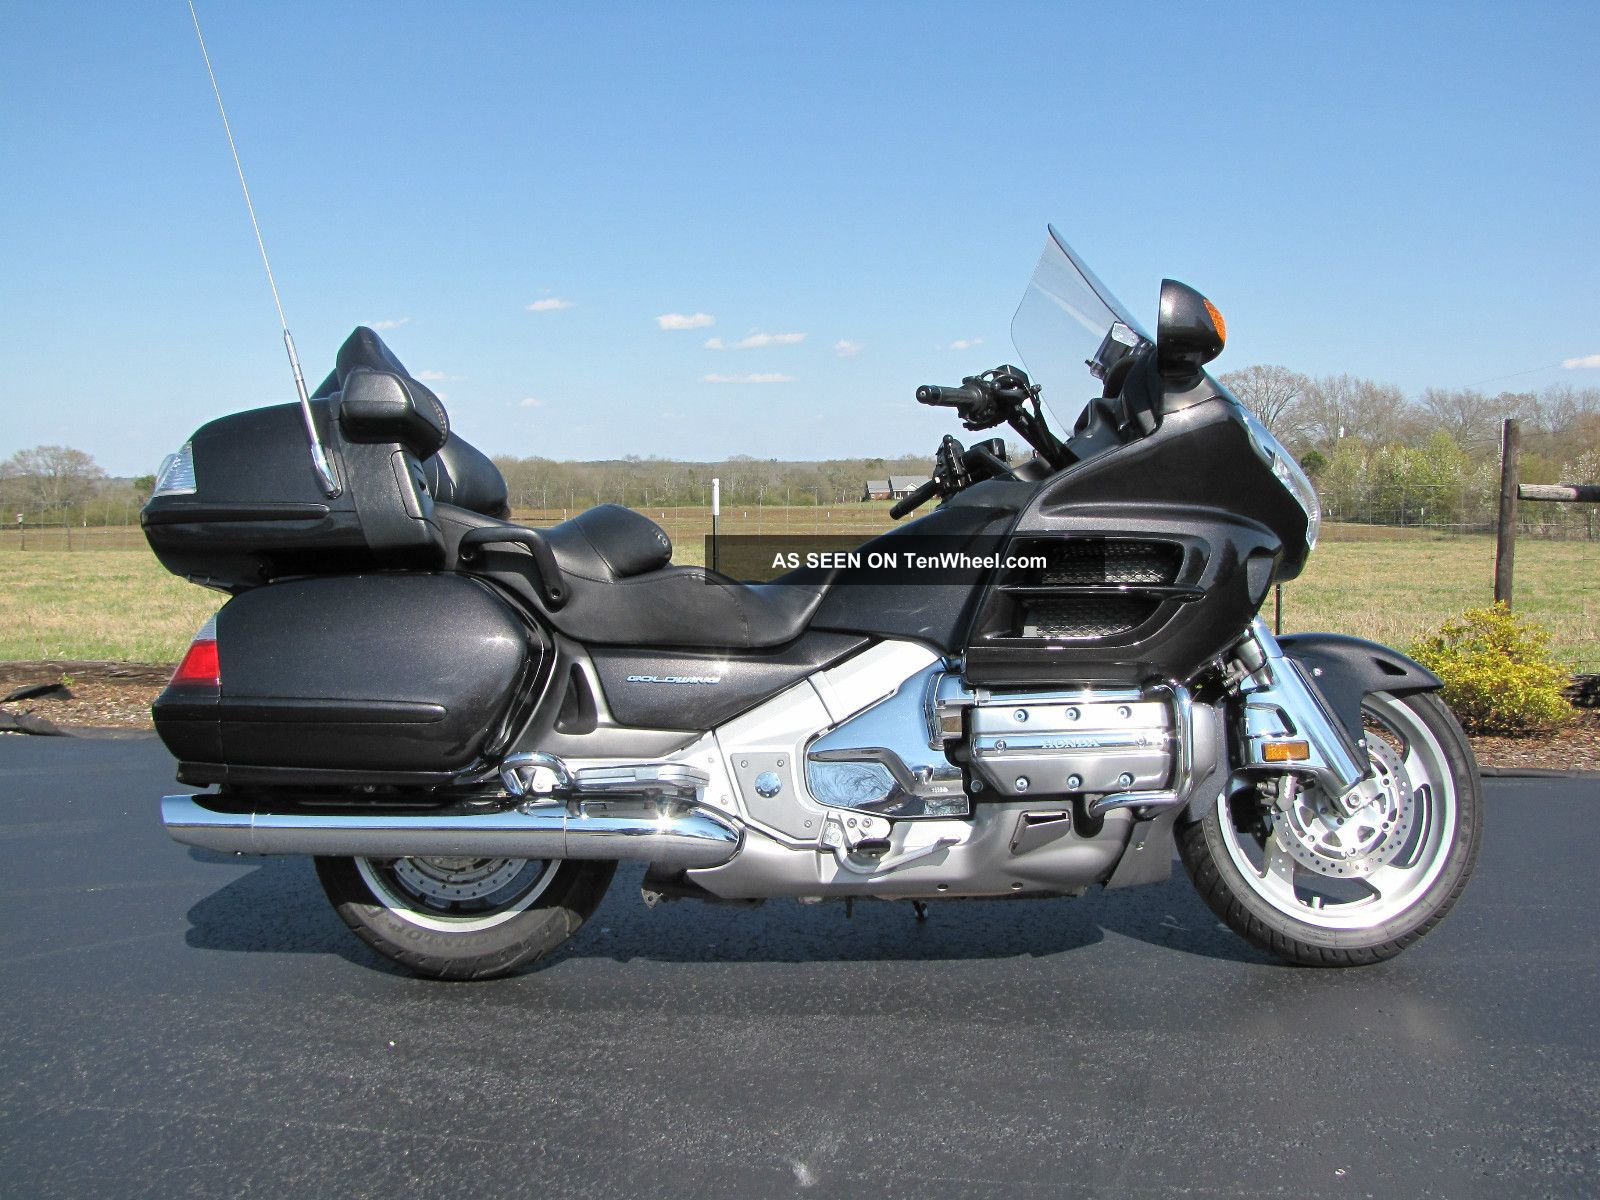 2010 Honda Goldwing Gl1800 Motorcycle (comfort Model)